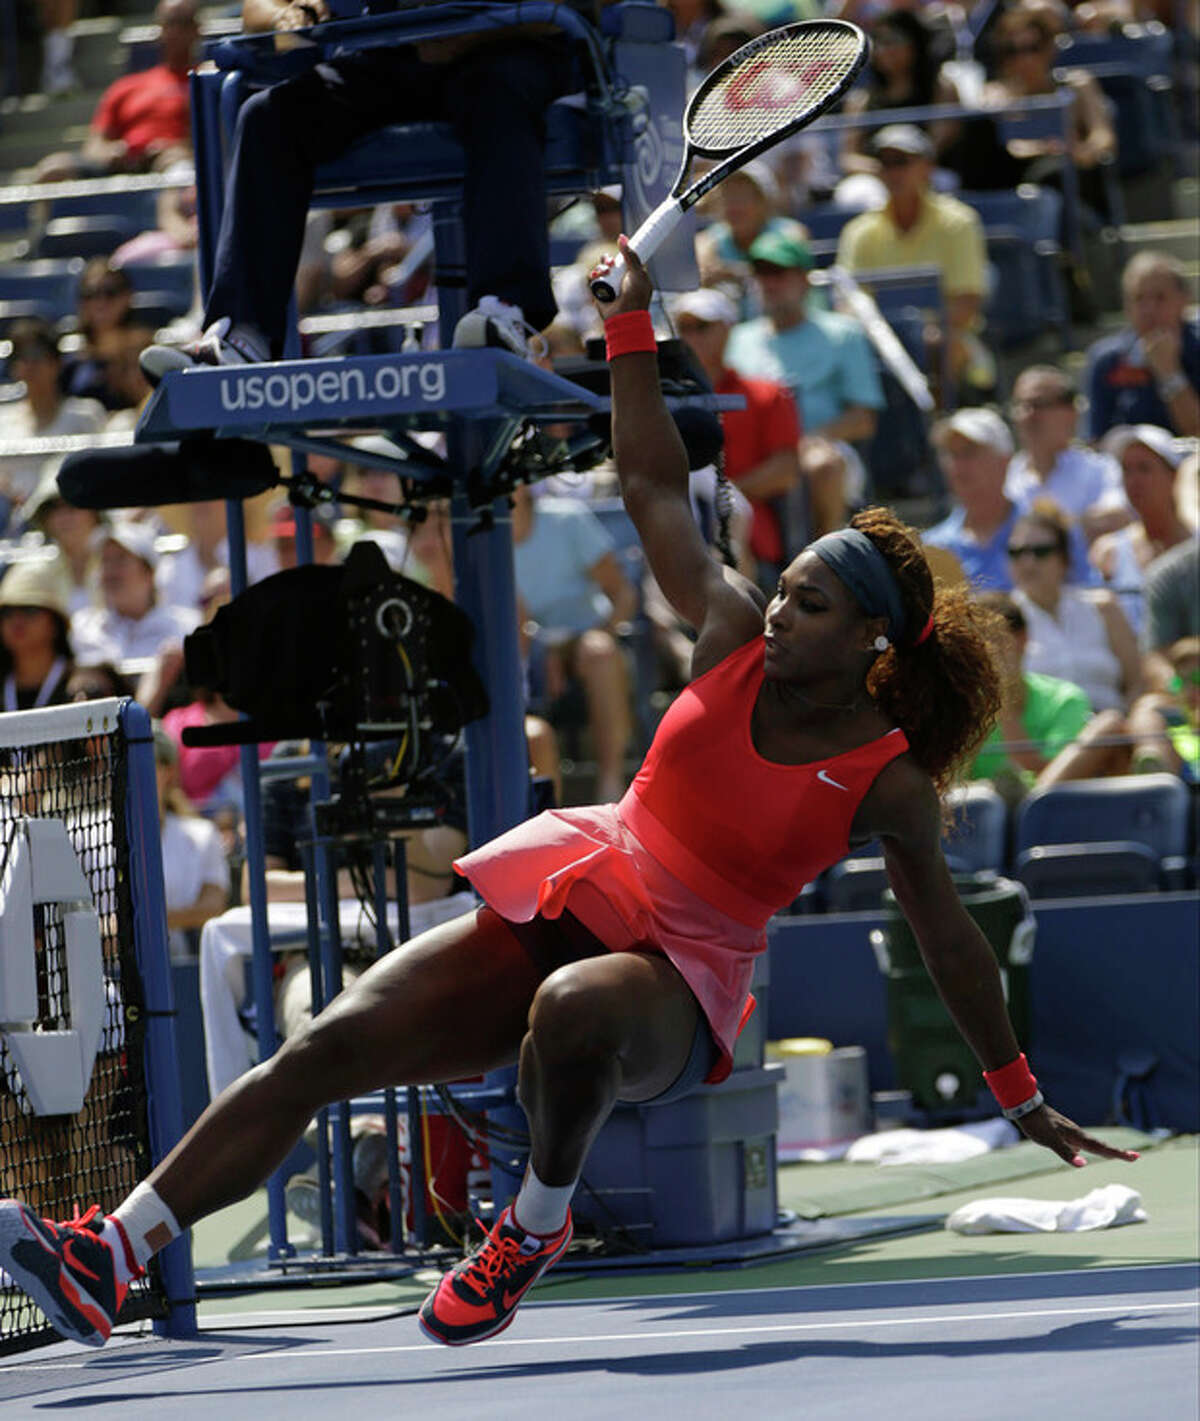 Serena Williams falls after an off-balance shot against Galina Voskoboeva of Kazakhstan during the second round of the 2013 U.S. Open tennis tournament, Thursday, Aug. 29, 2013, in New York. (AP Photo/Kathy Willens)